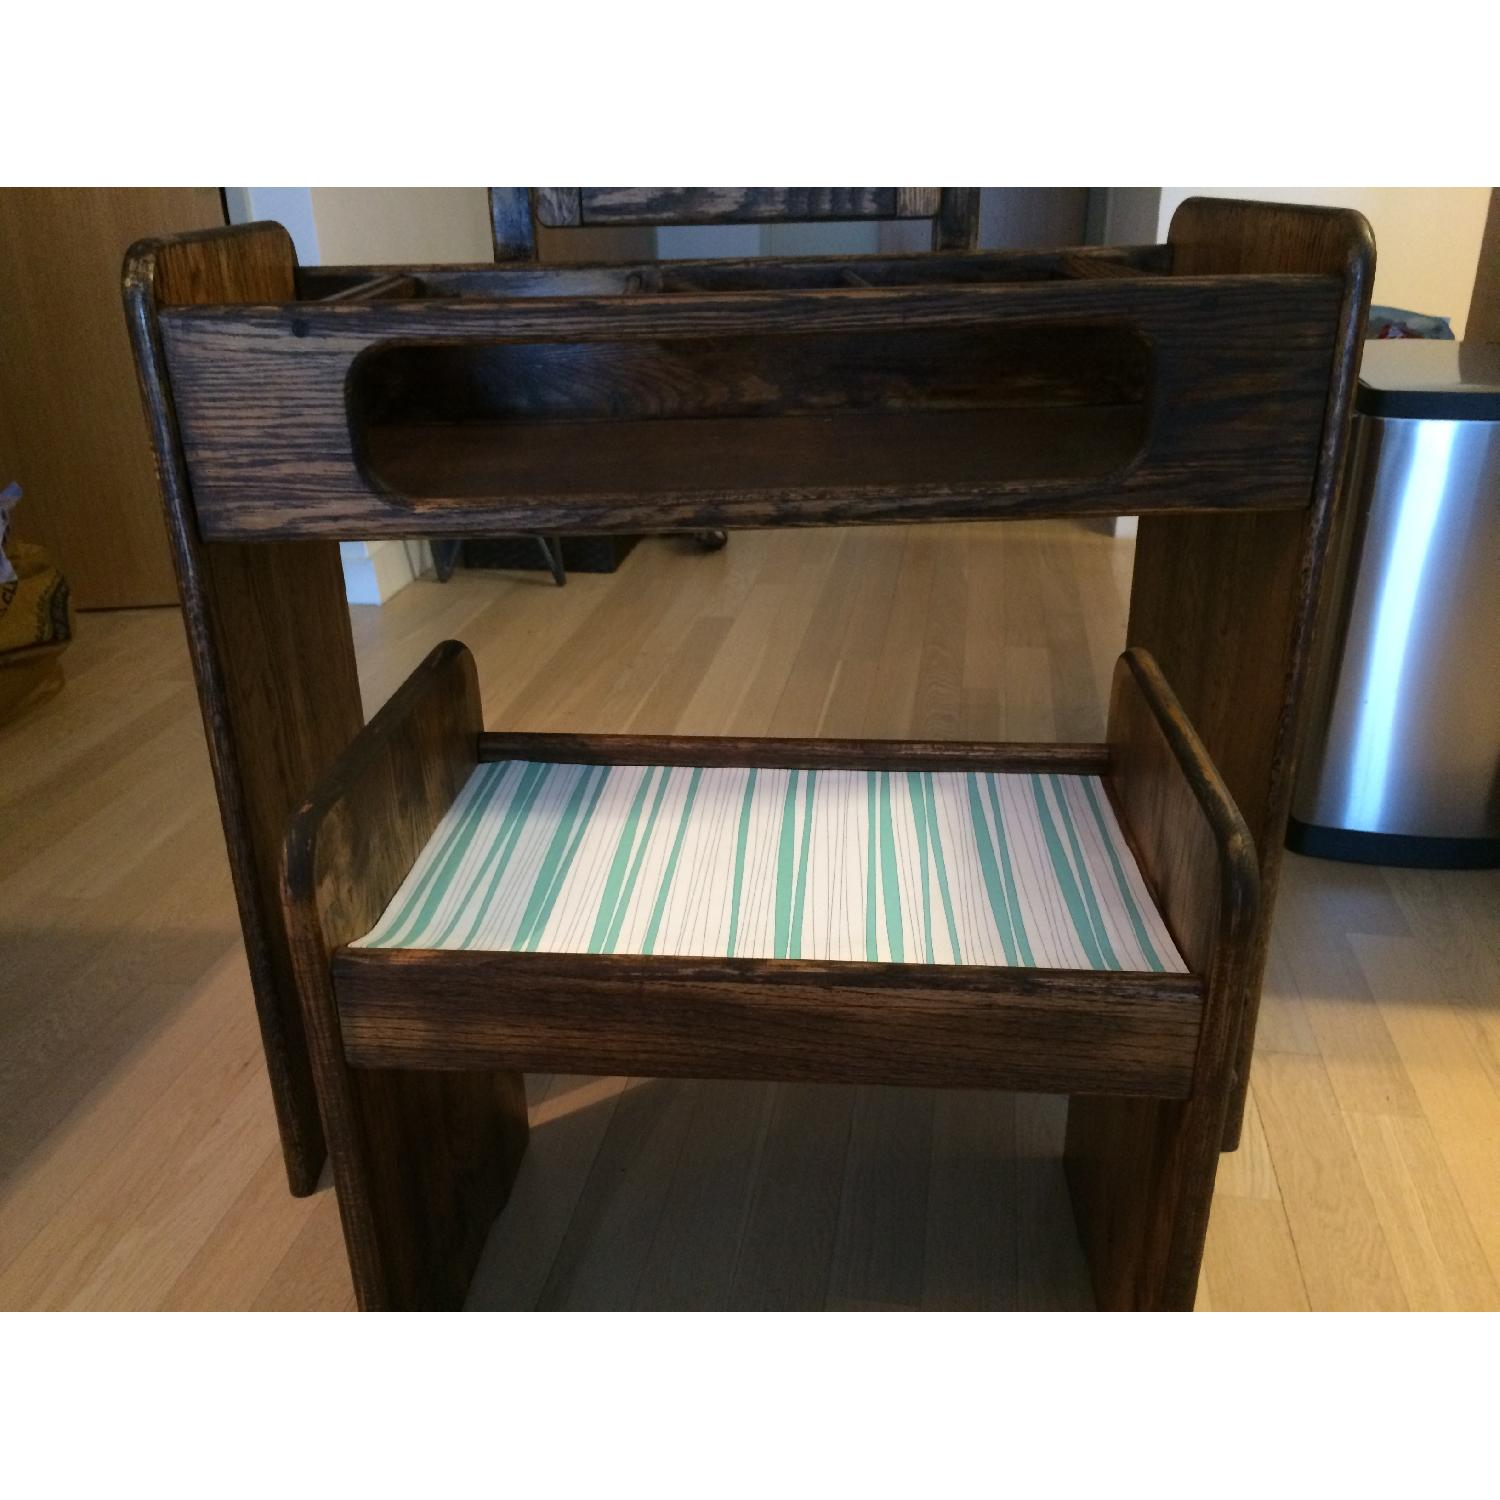 Make-Up/Vanity Table w/ Bench - image-5